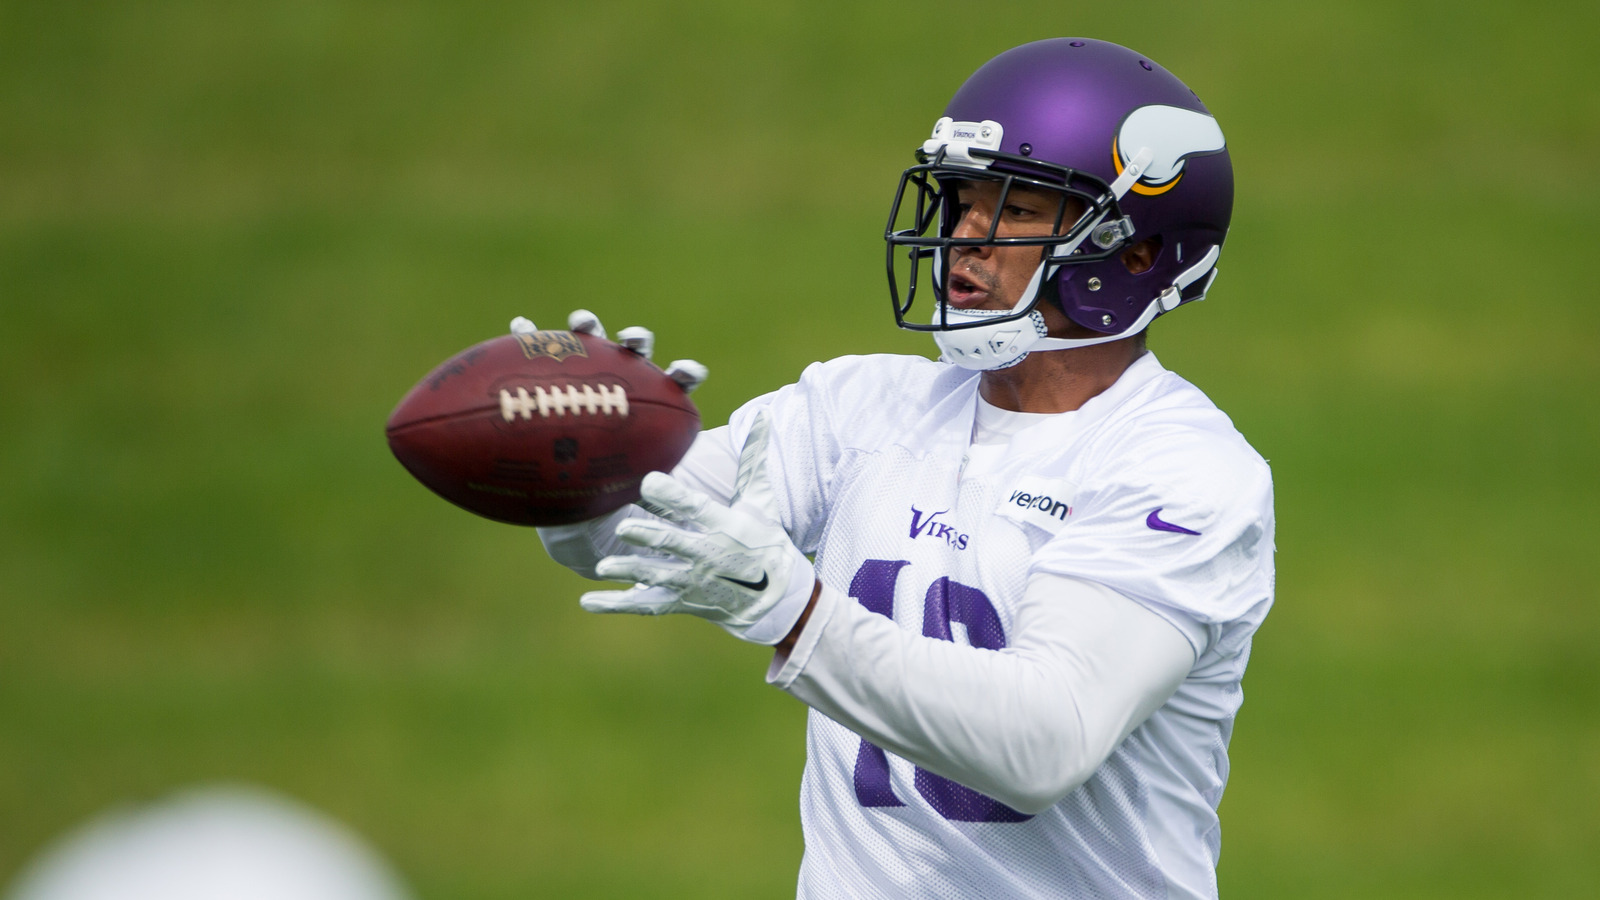 Vikings Player Floyd Expected to Appear in Arizona Court